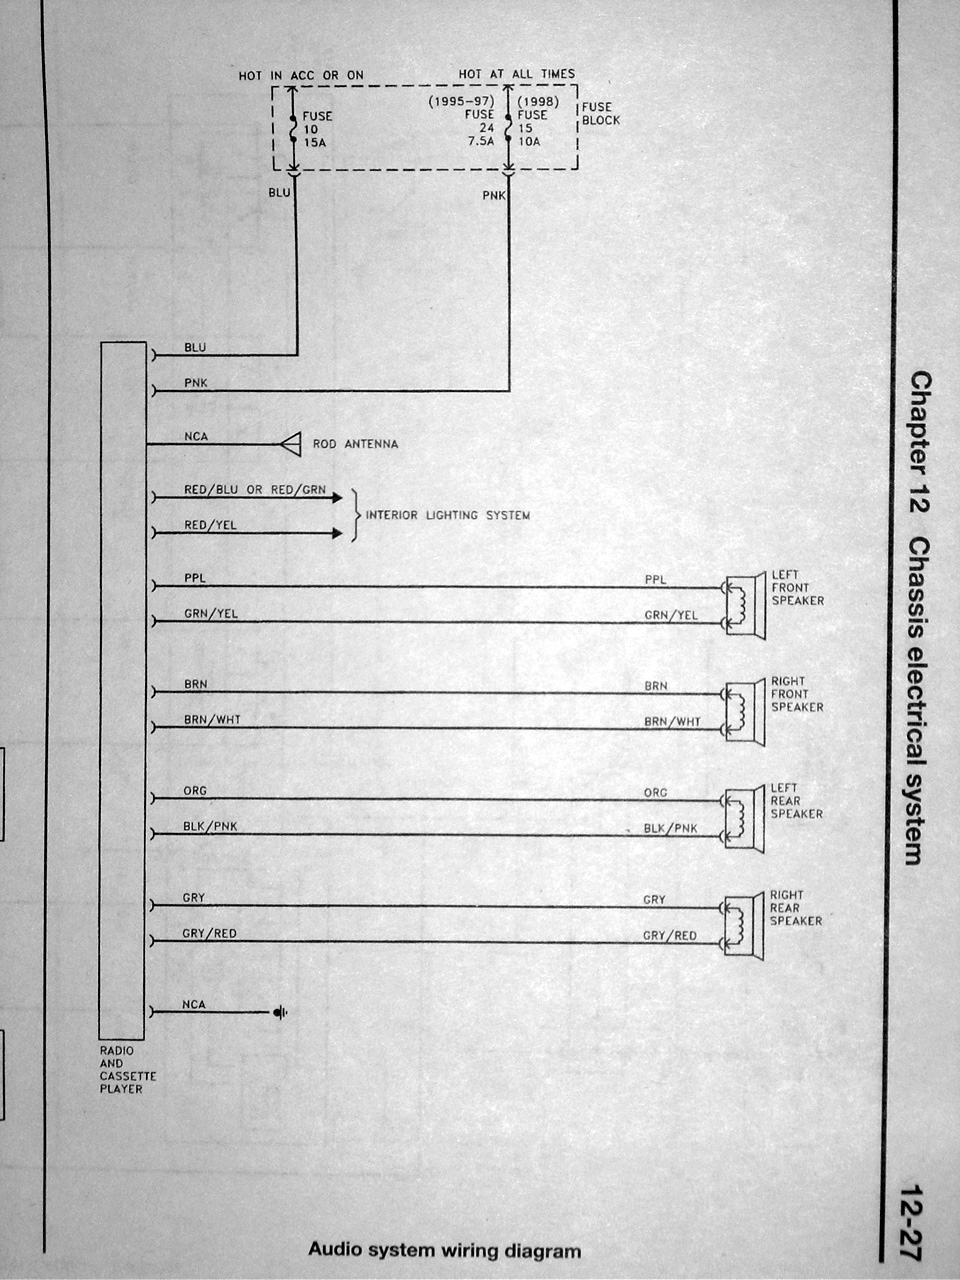 Double Din Radio Wiring Diagram Library Metra 70 2003 Harness Free Download Diagrams Thread Useful Info Nissan Forum Schematic Pulsar